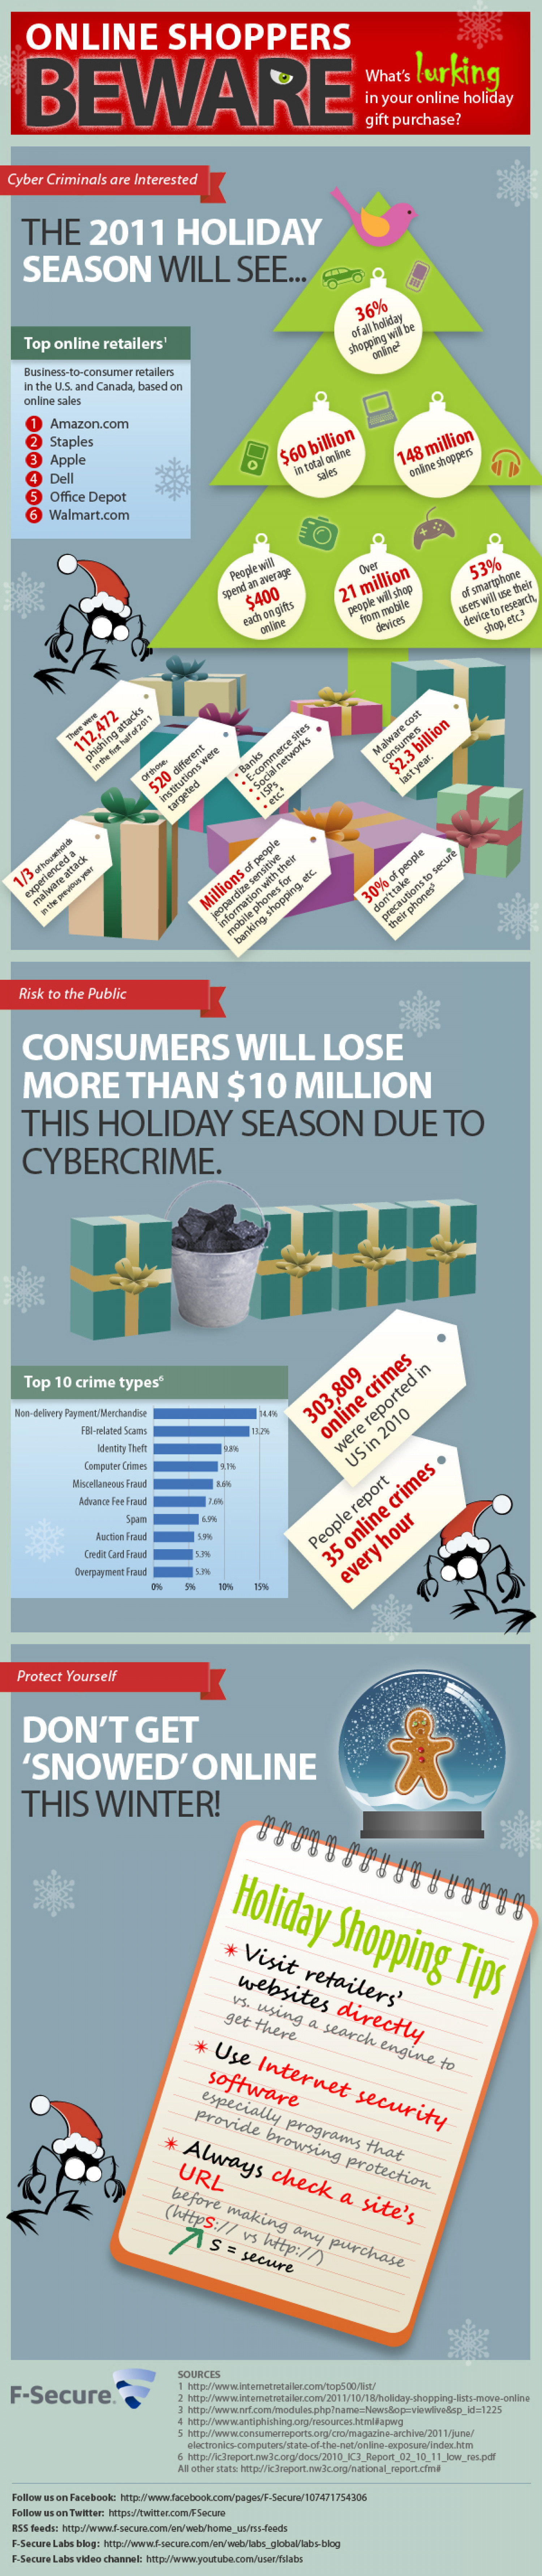 Online Shoppers Beware: What's Lurking in Your Online Holiday Gift Purchase Infographic